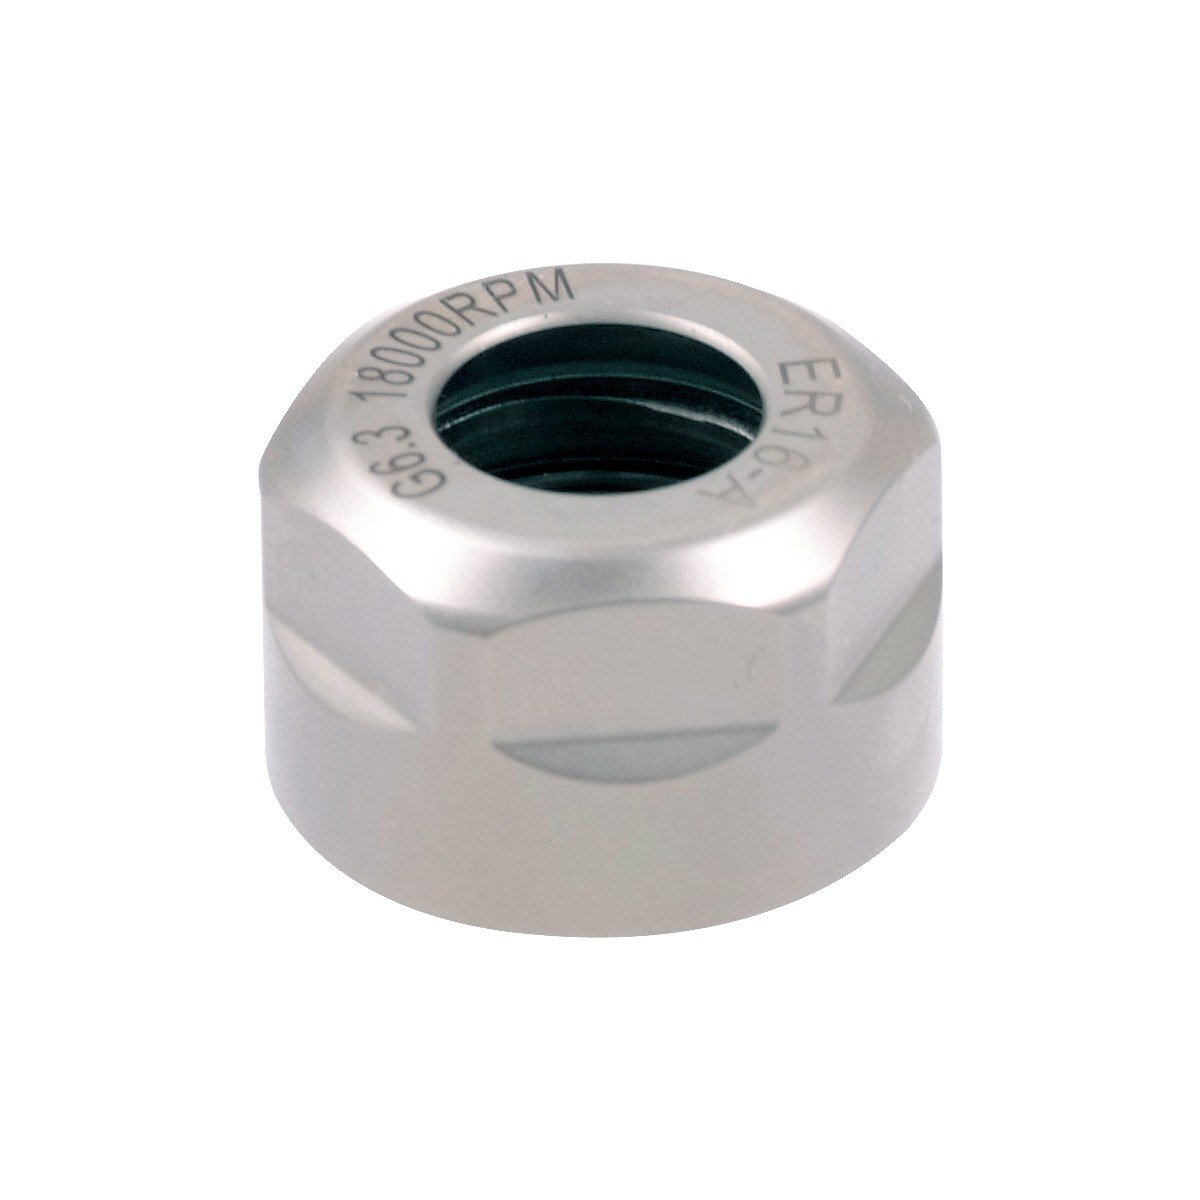 Pro Series by HHIP 3900-0685 Collet Chuck Nut, A-Type Er11, 18000 rpm, 19 mm by HHIP